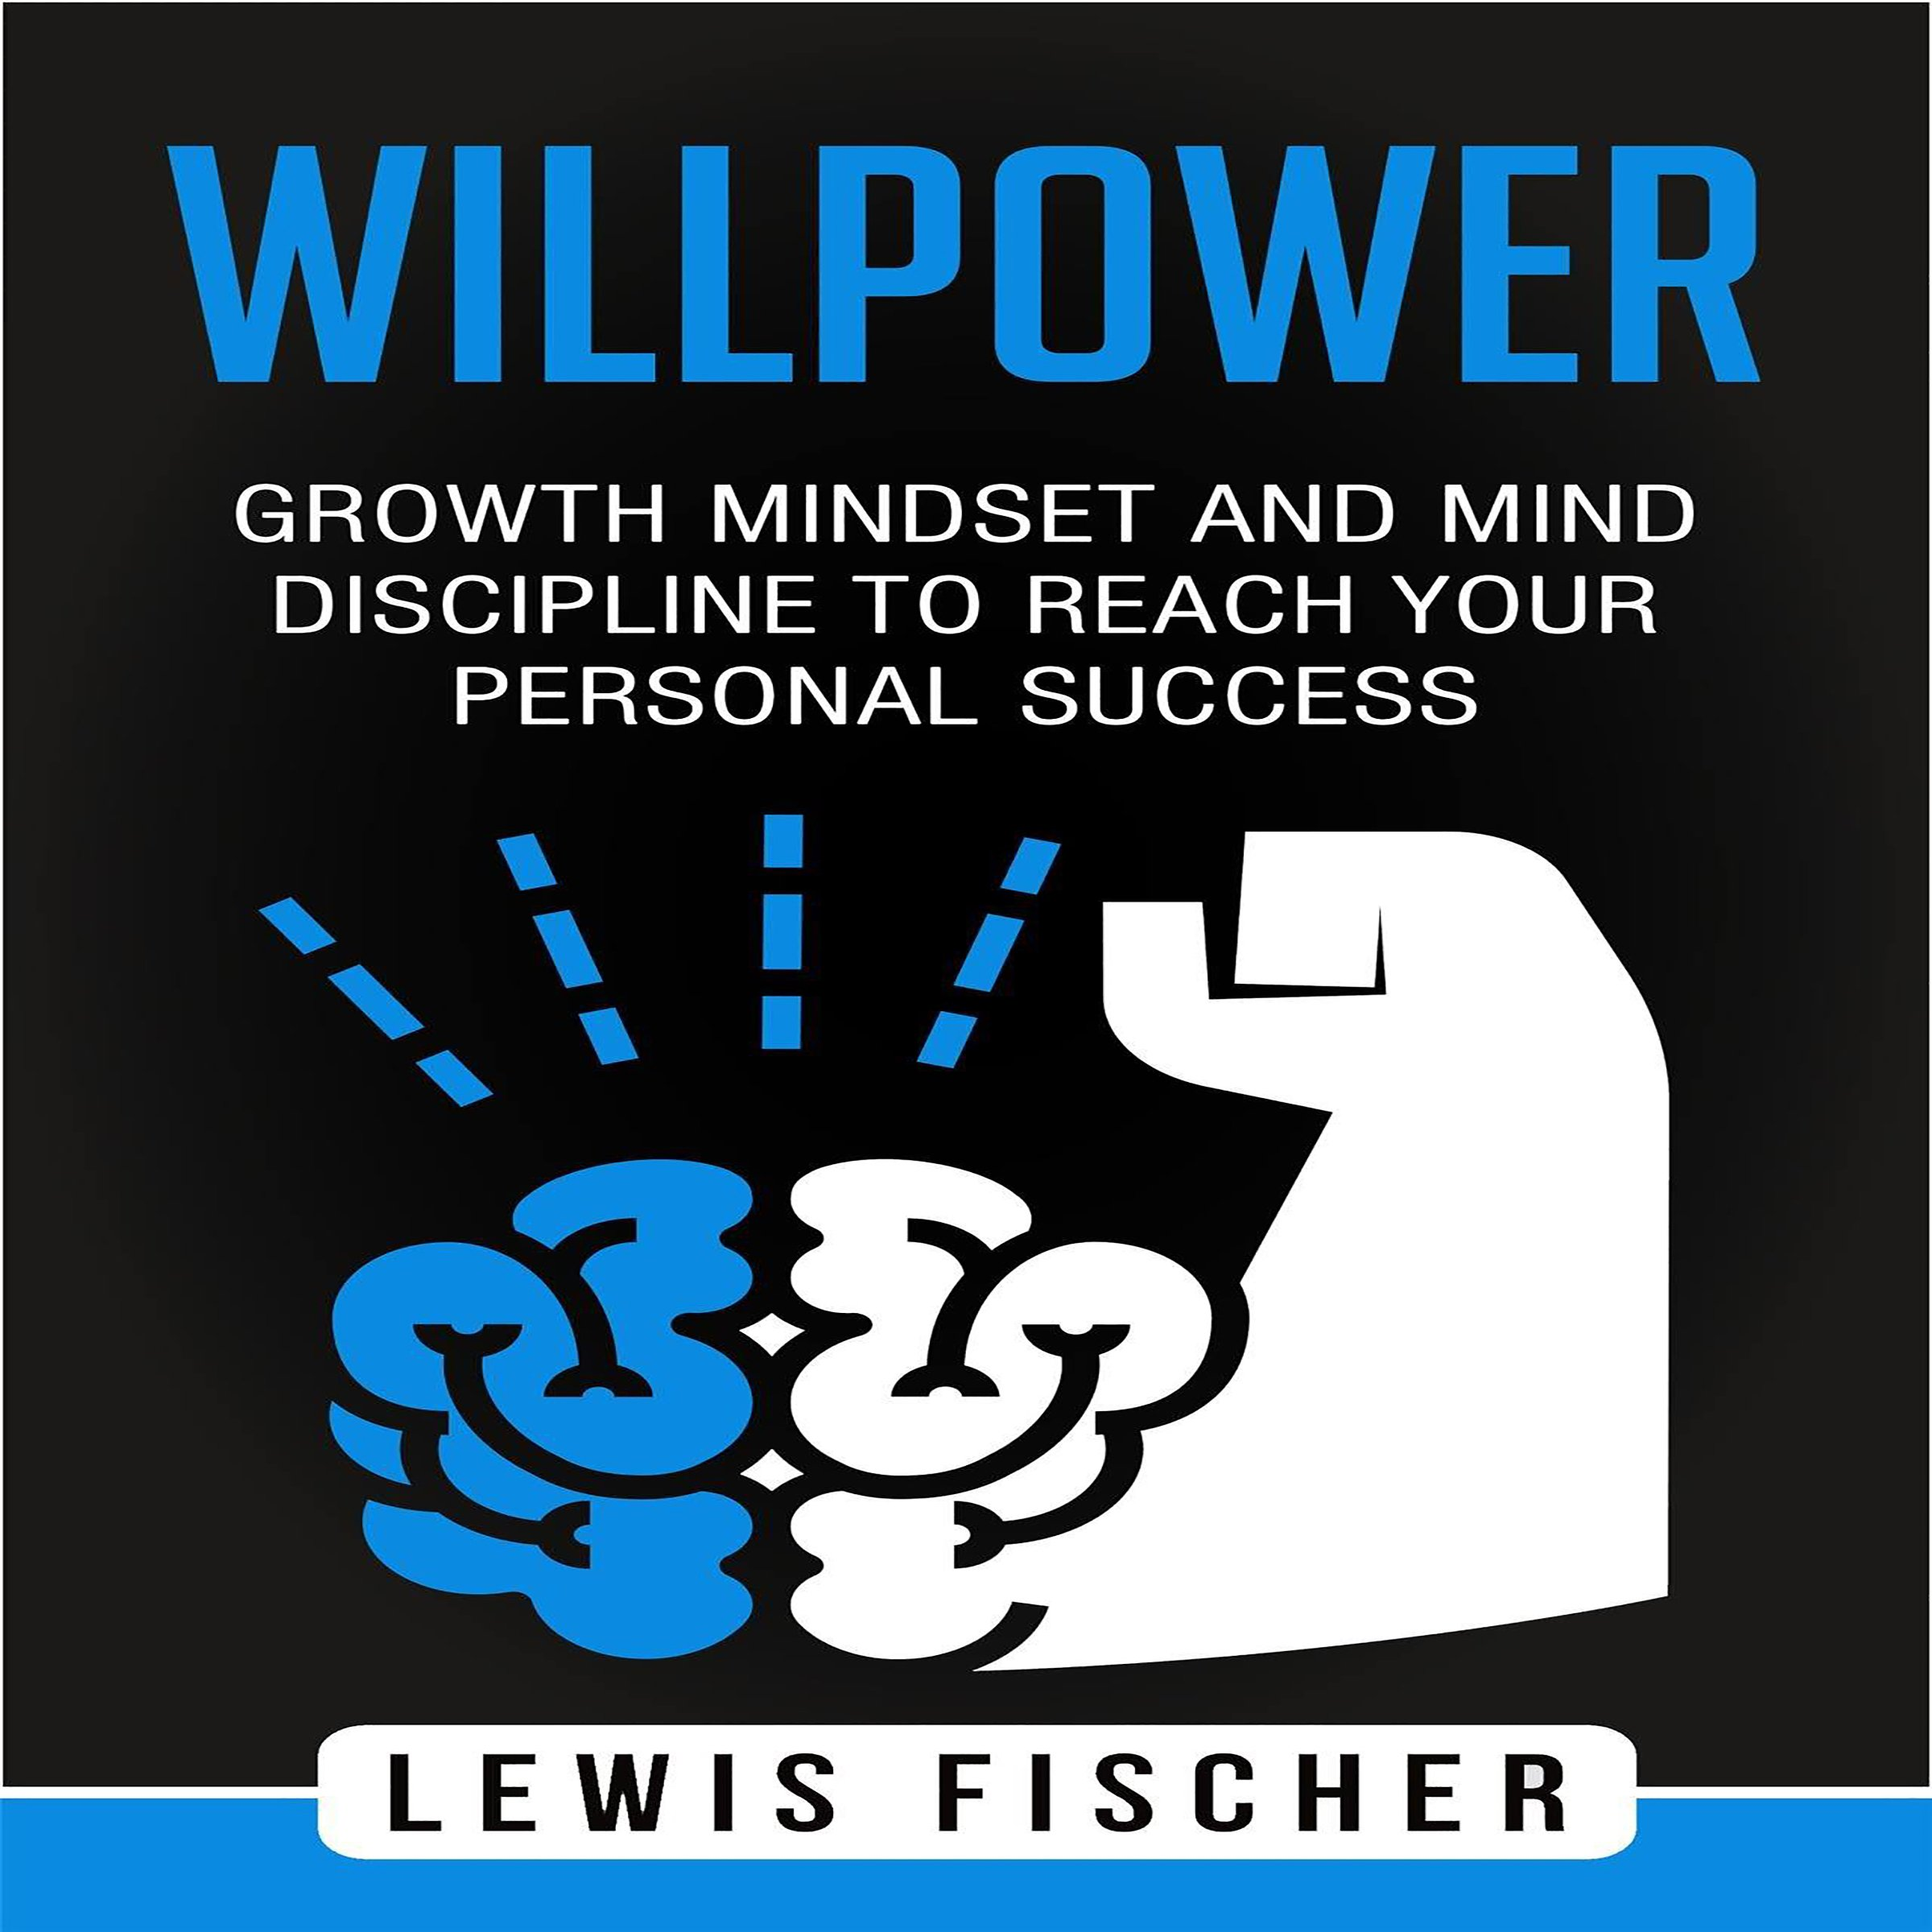 Willpower: Growth Mindset and Mind Discipline to Reach Your Personal Success